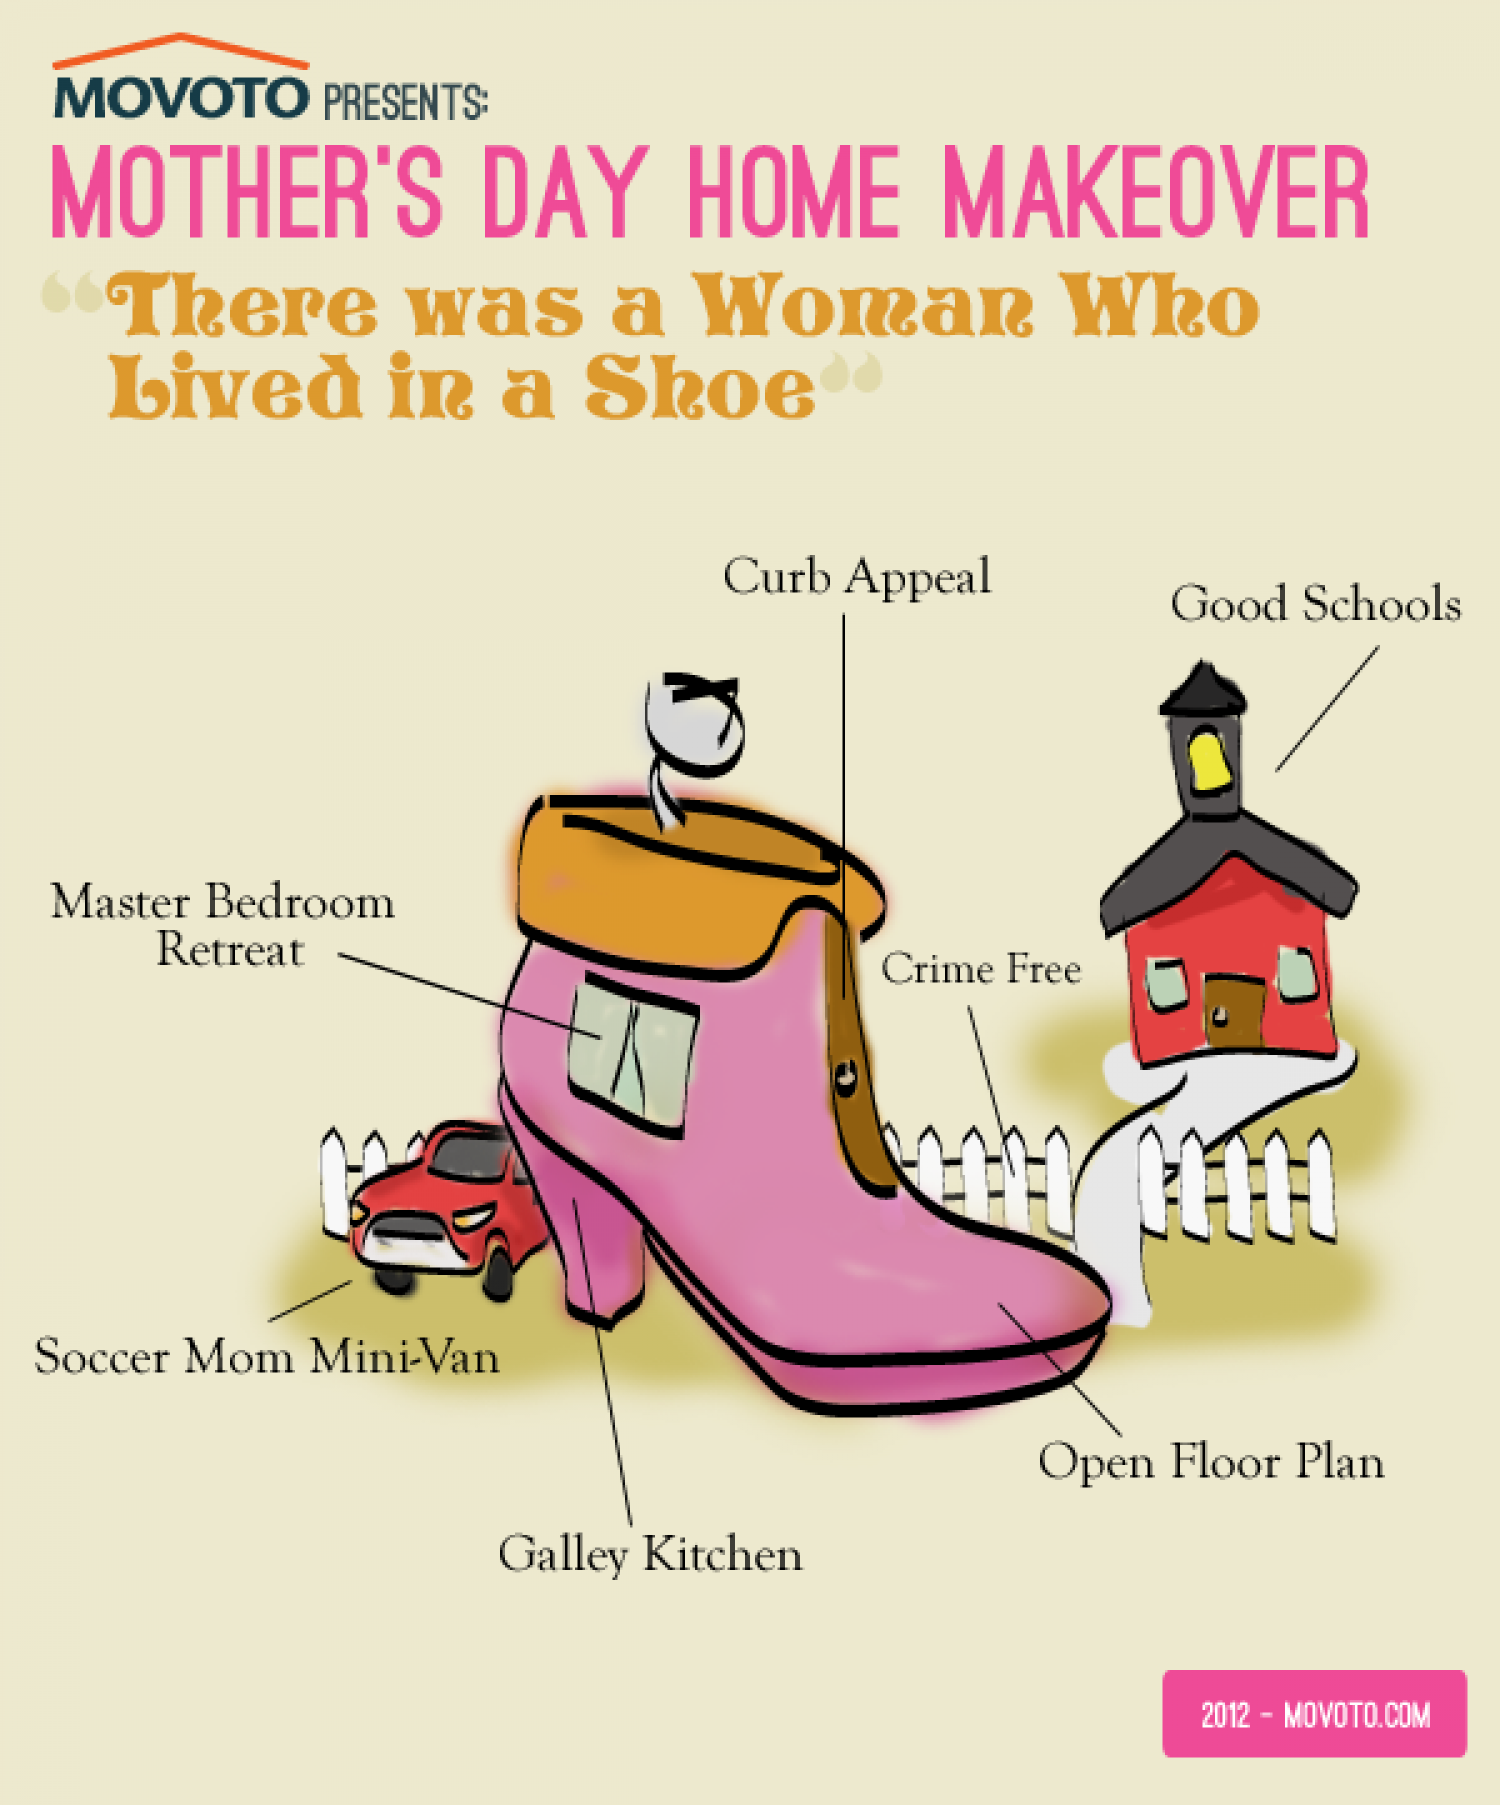 Nursery Rhyme Mother's Day Fun Infographic